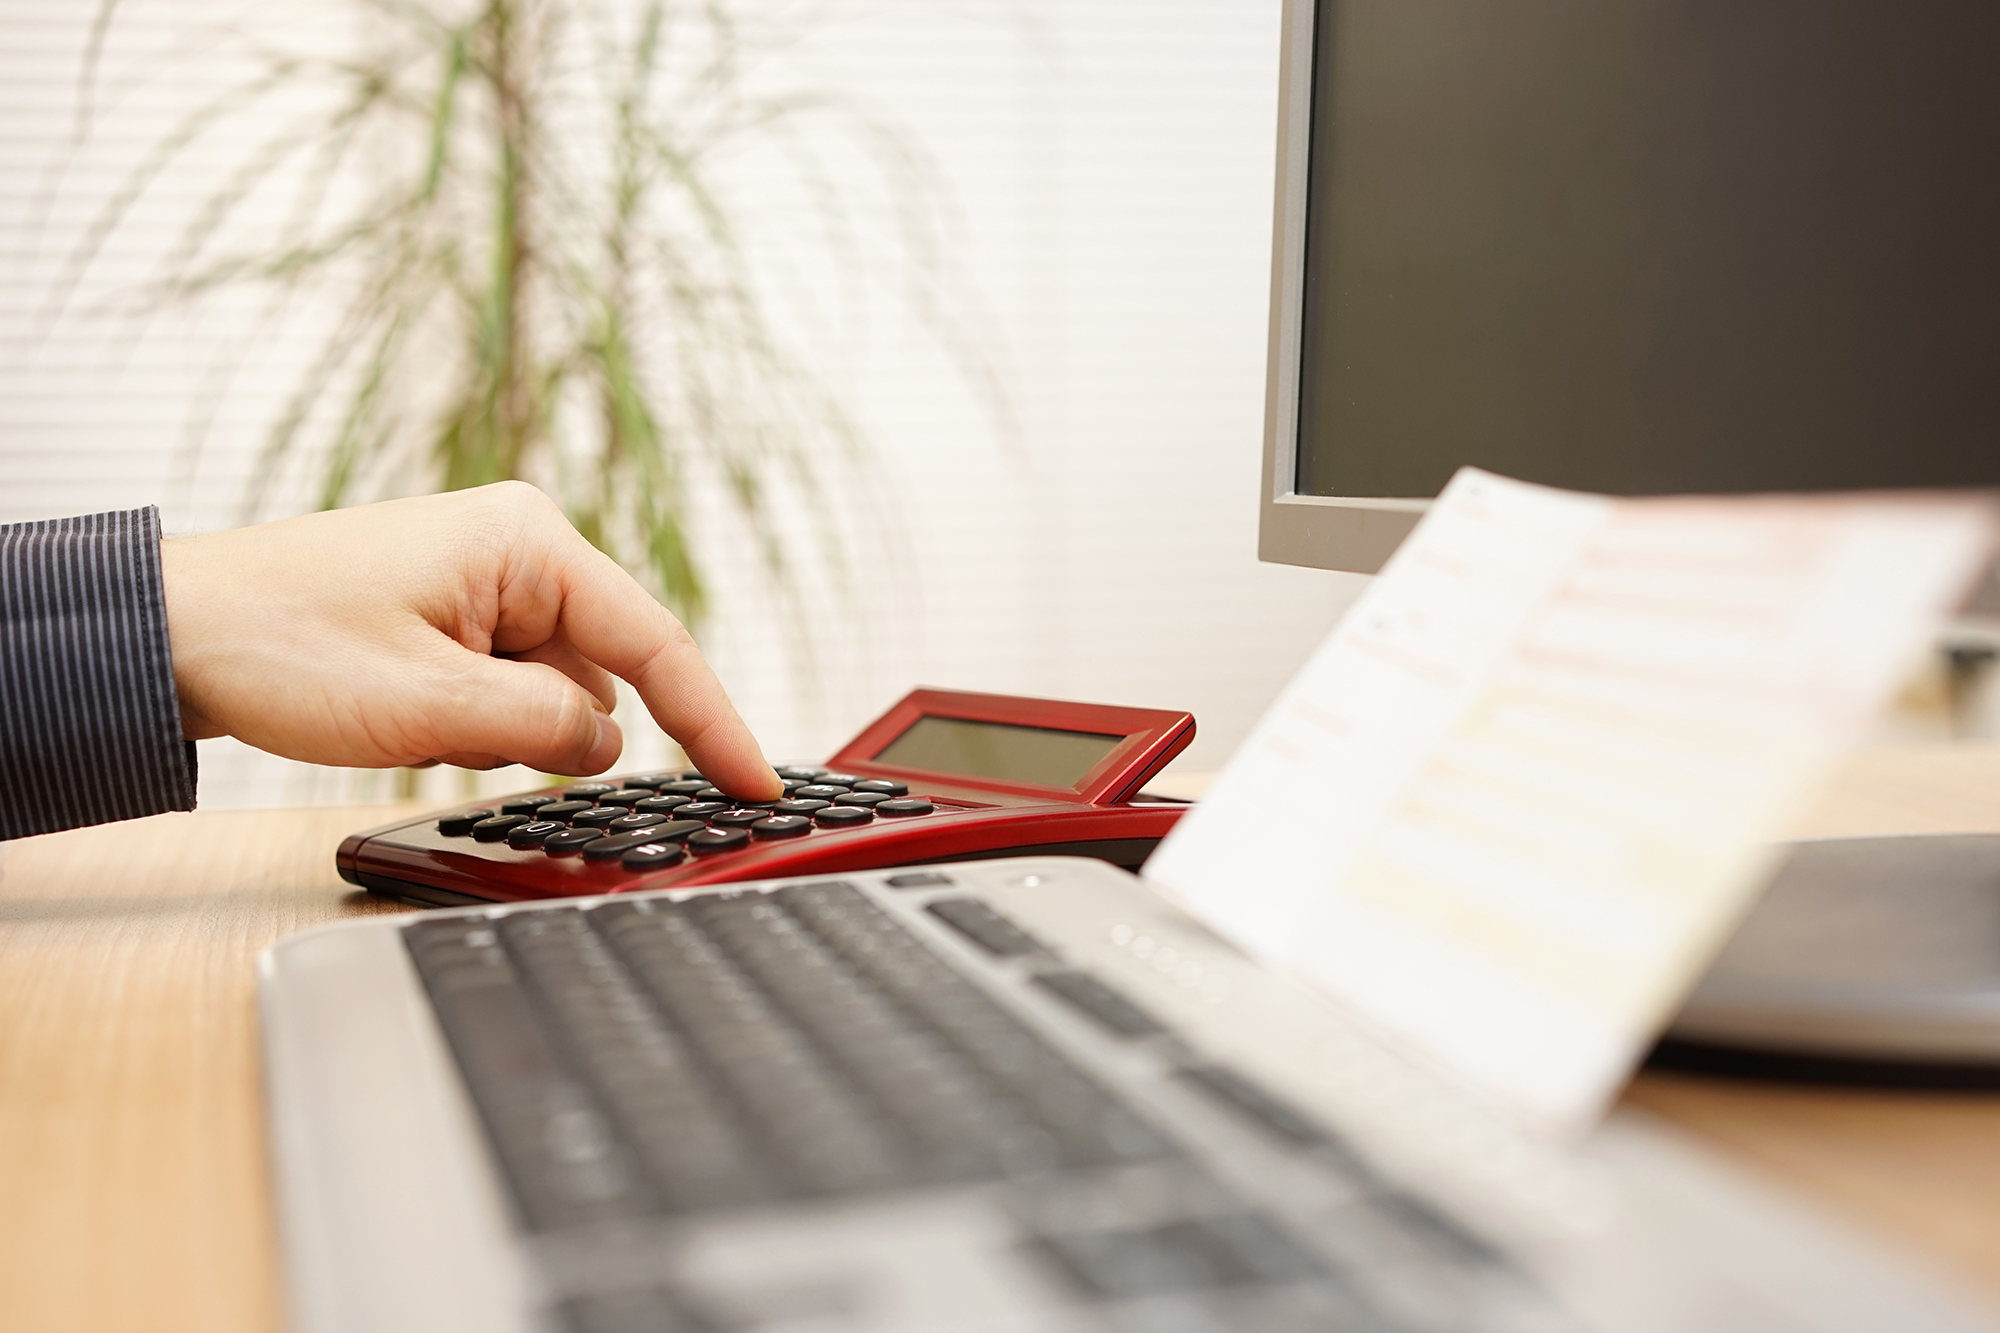 Man calculating monthly payments. (Image: Shutterstock)